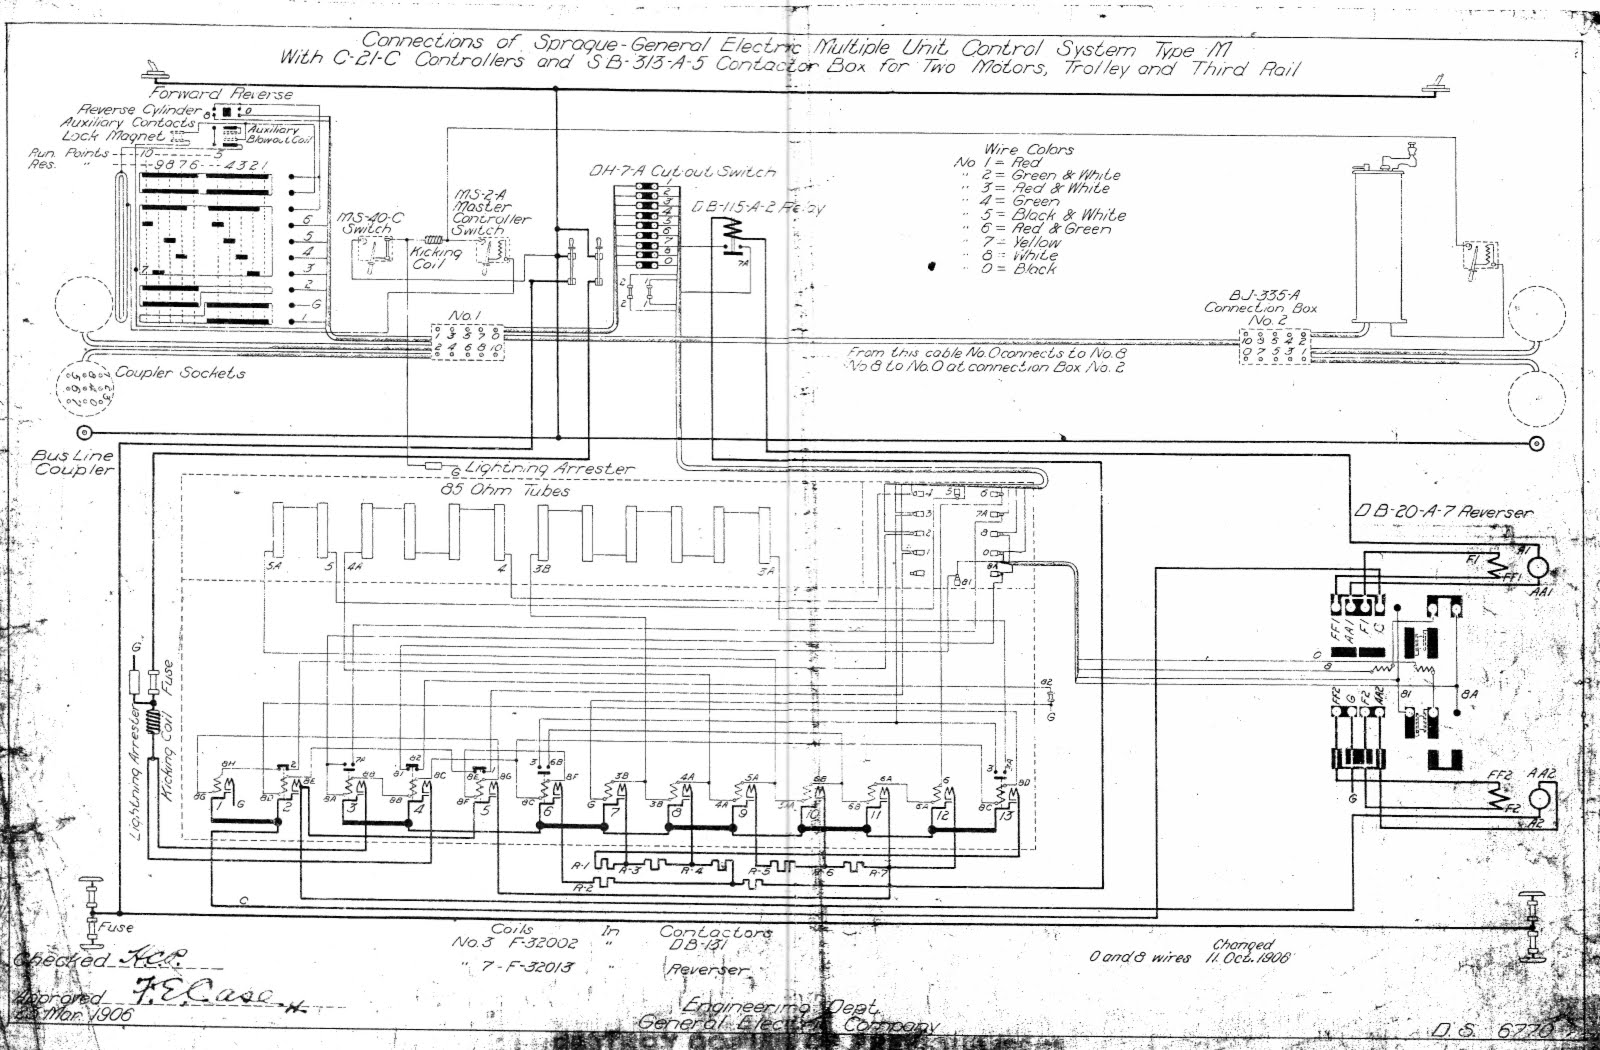 Tata Car Manuals Wiring Diagrams Pdf Fault Codes 1964 Chevy Truck Diagram Download